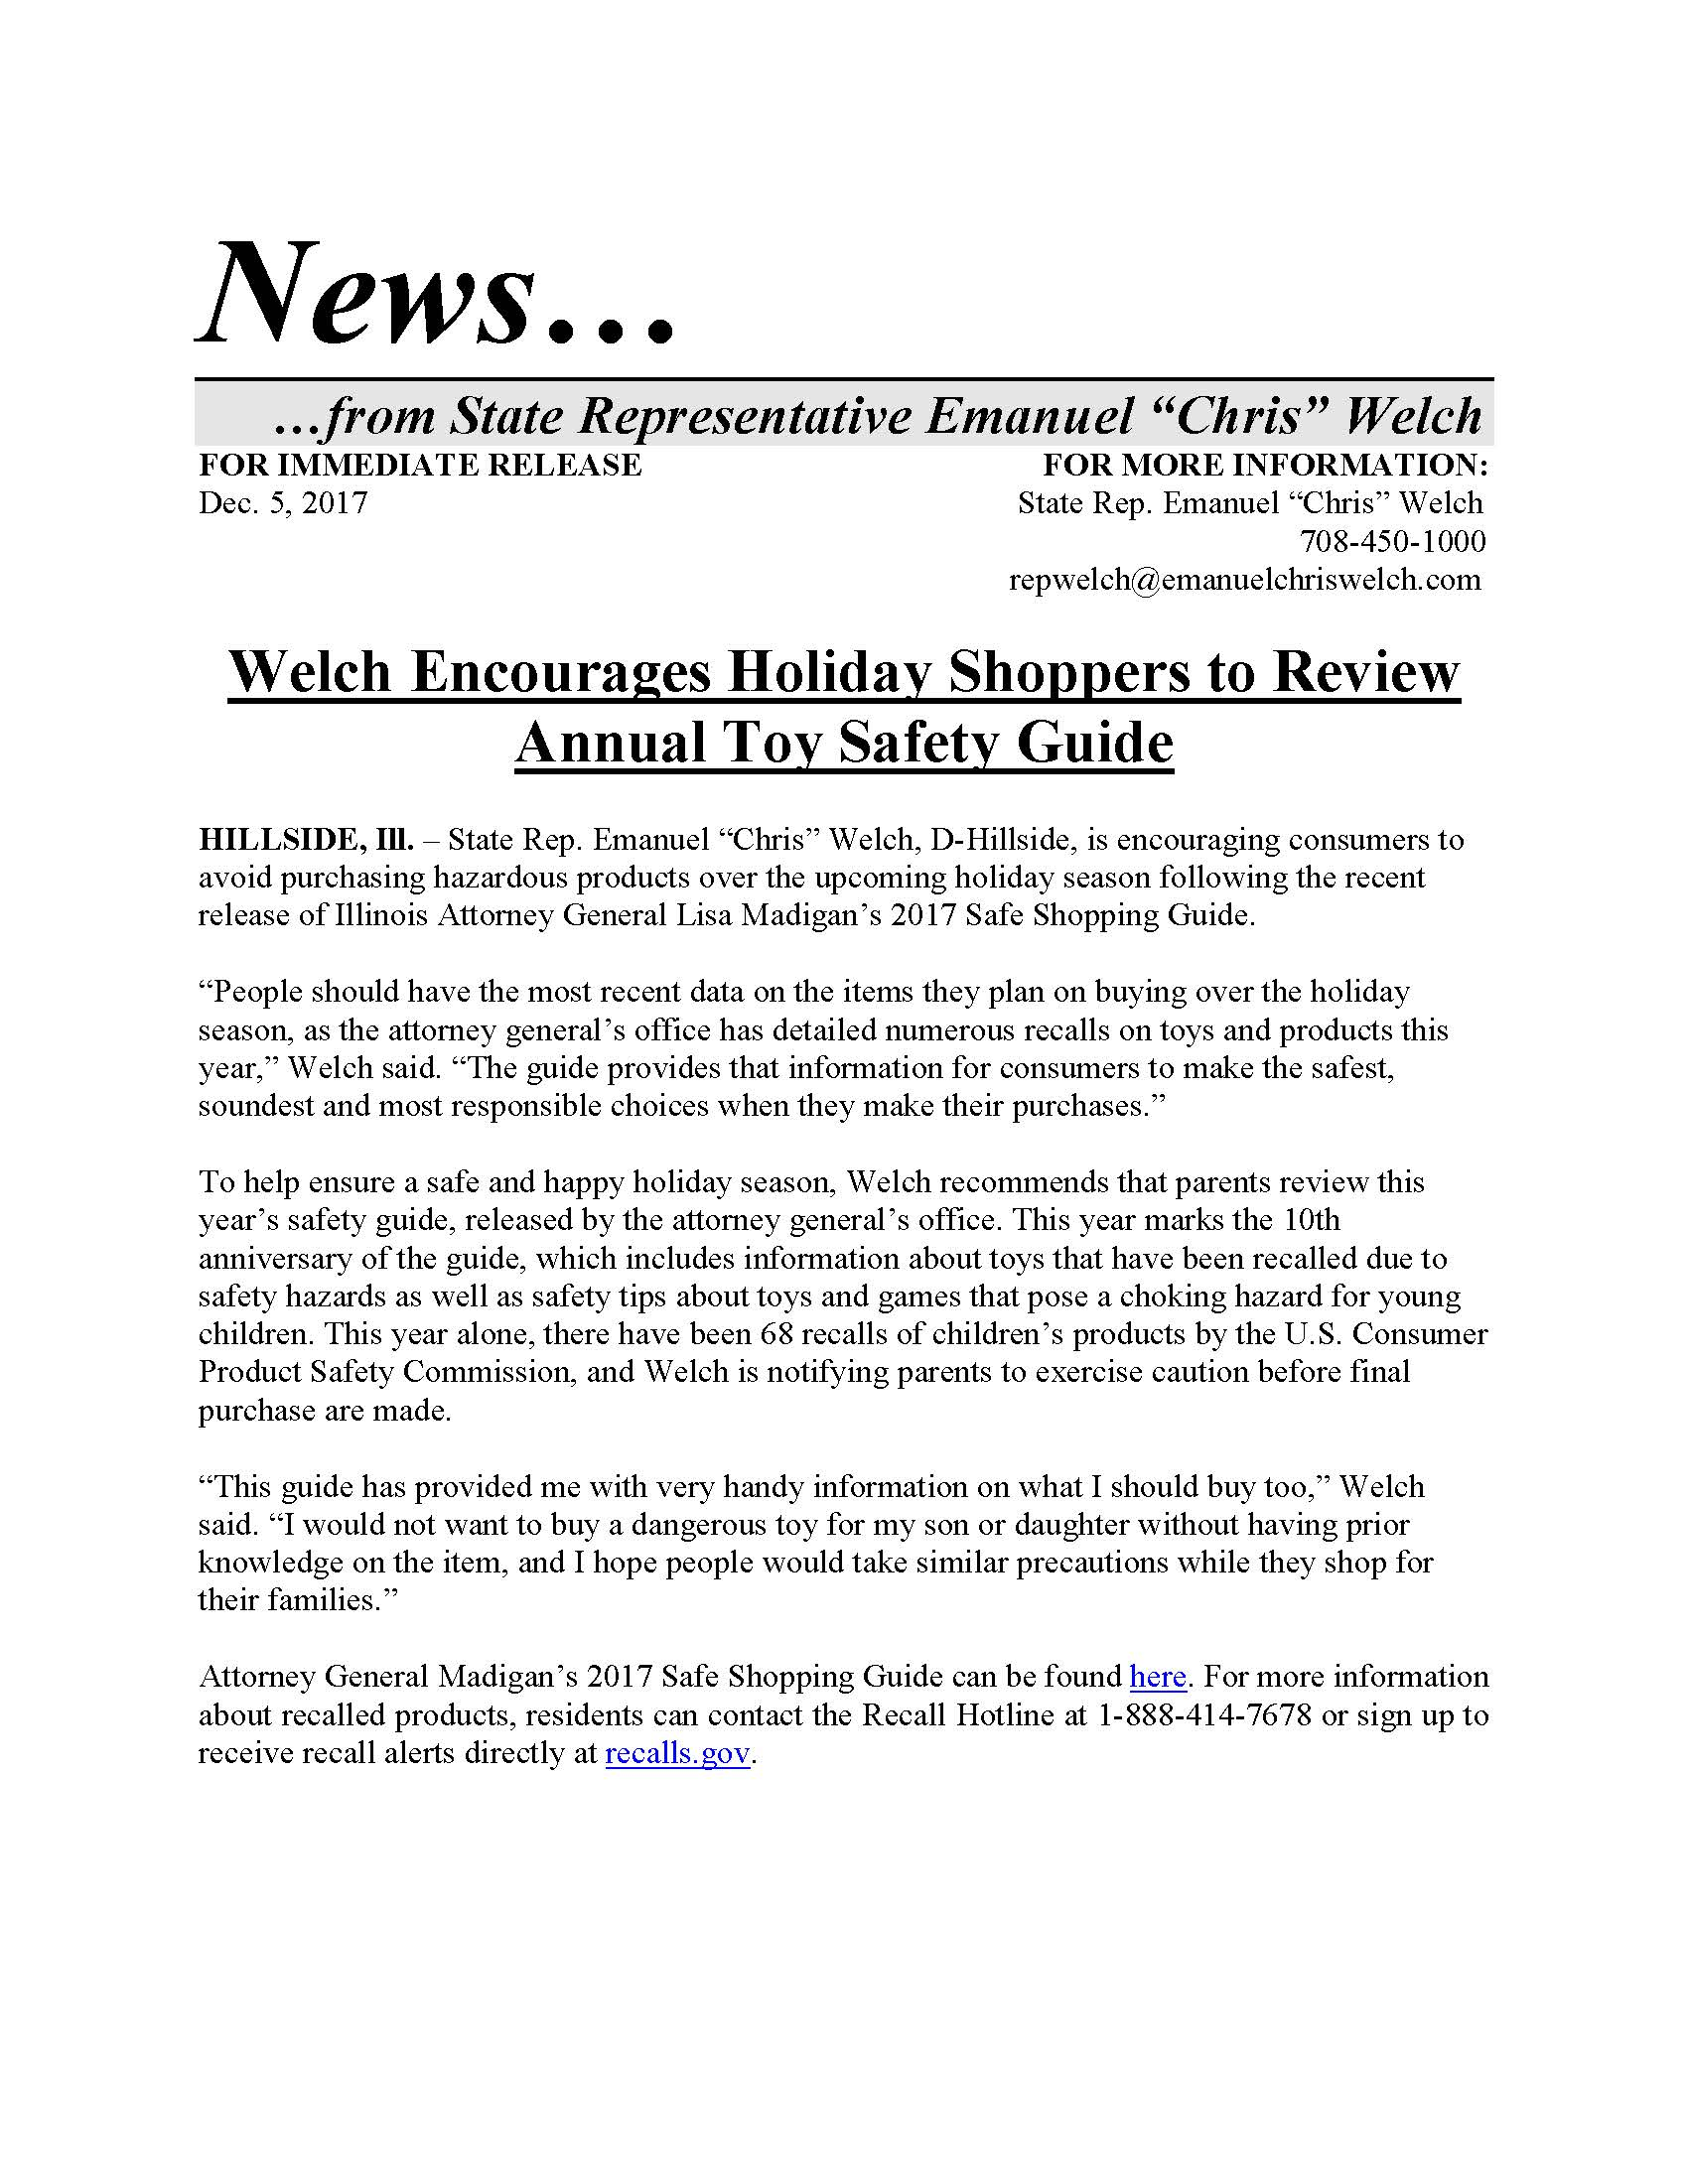 Welch Encourages Holiday Shoppers to Review Annual Toy Safety Guide  (December 5, 2017)